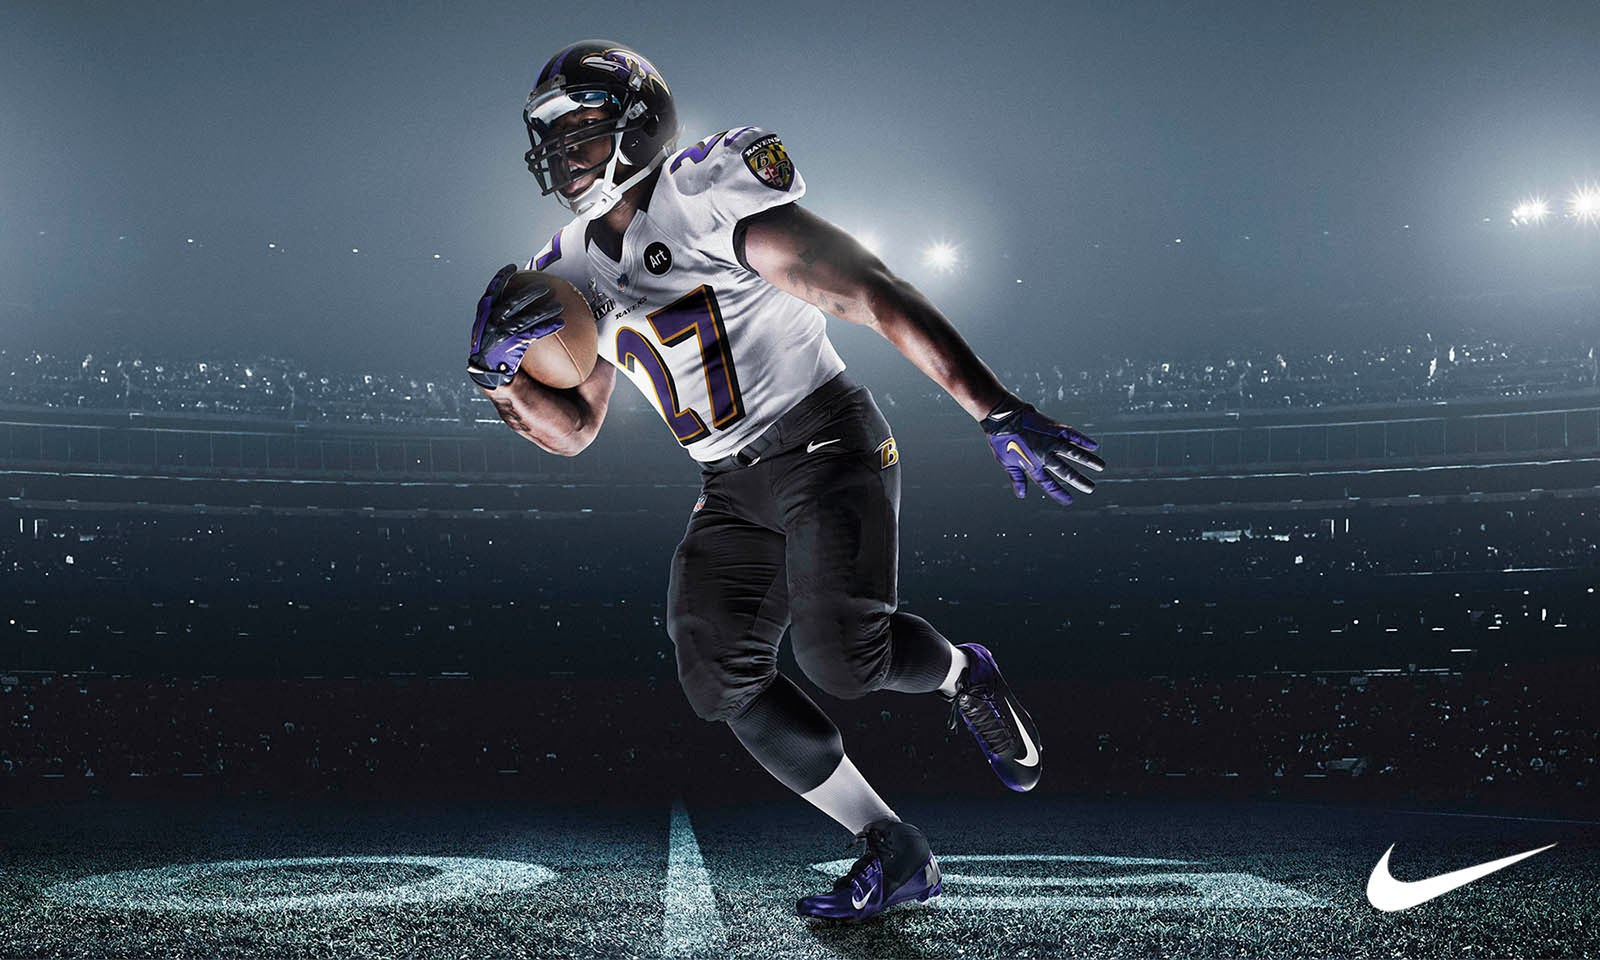 nfl player ray rice hd wallpapers collection | sports club blog